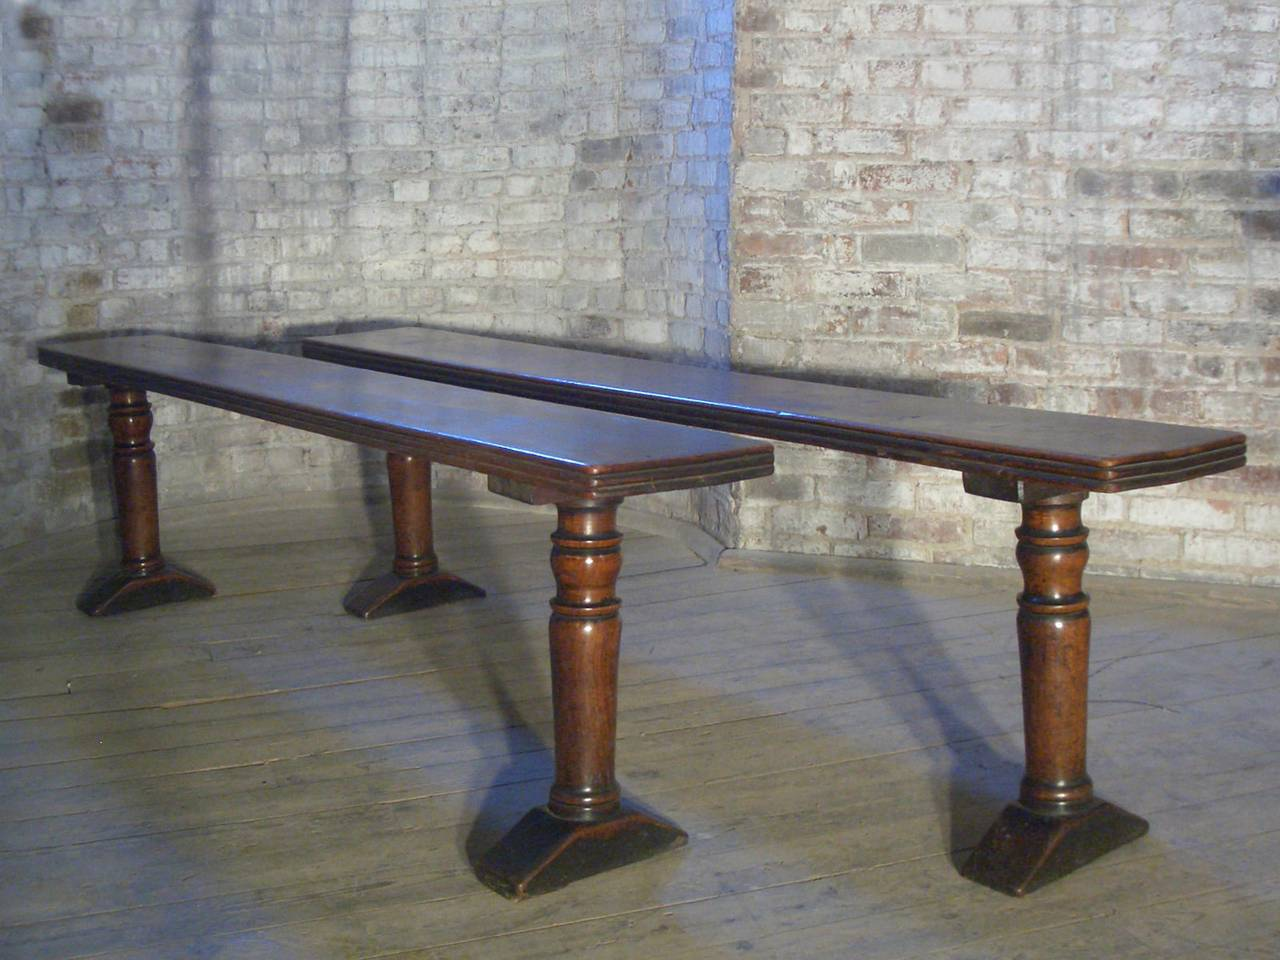 A sleek, sturdy pair of long, narrow benches, the thick, reeded top supported by turned legs on simple shoe-feet.